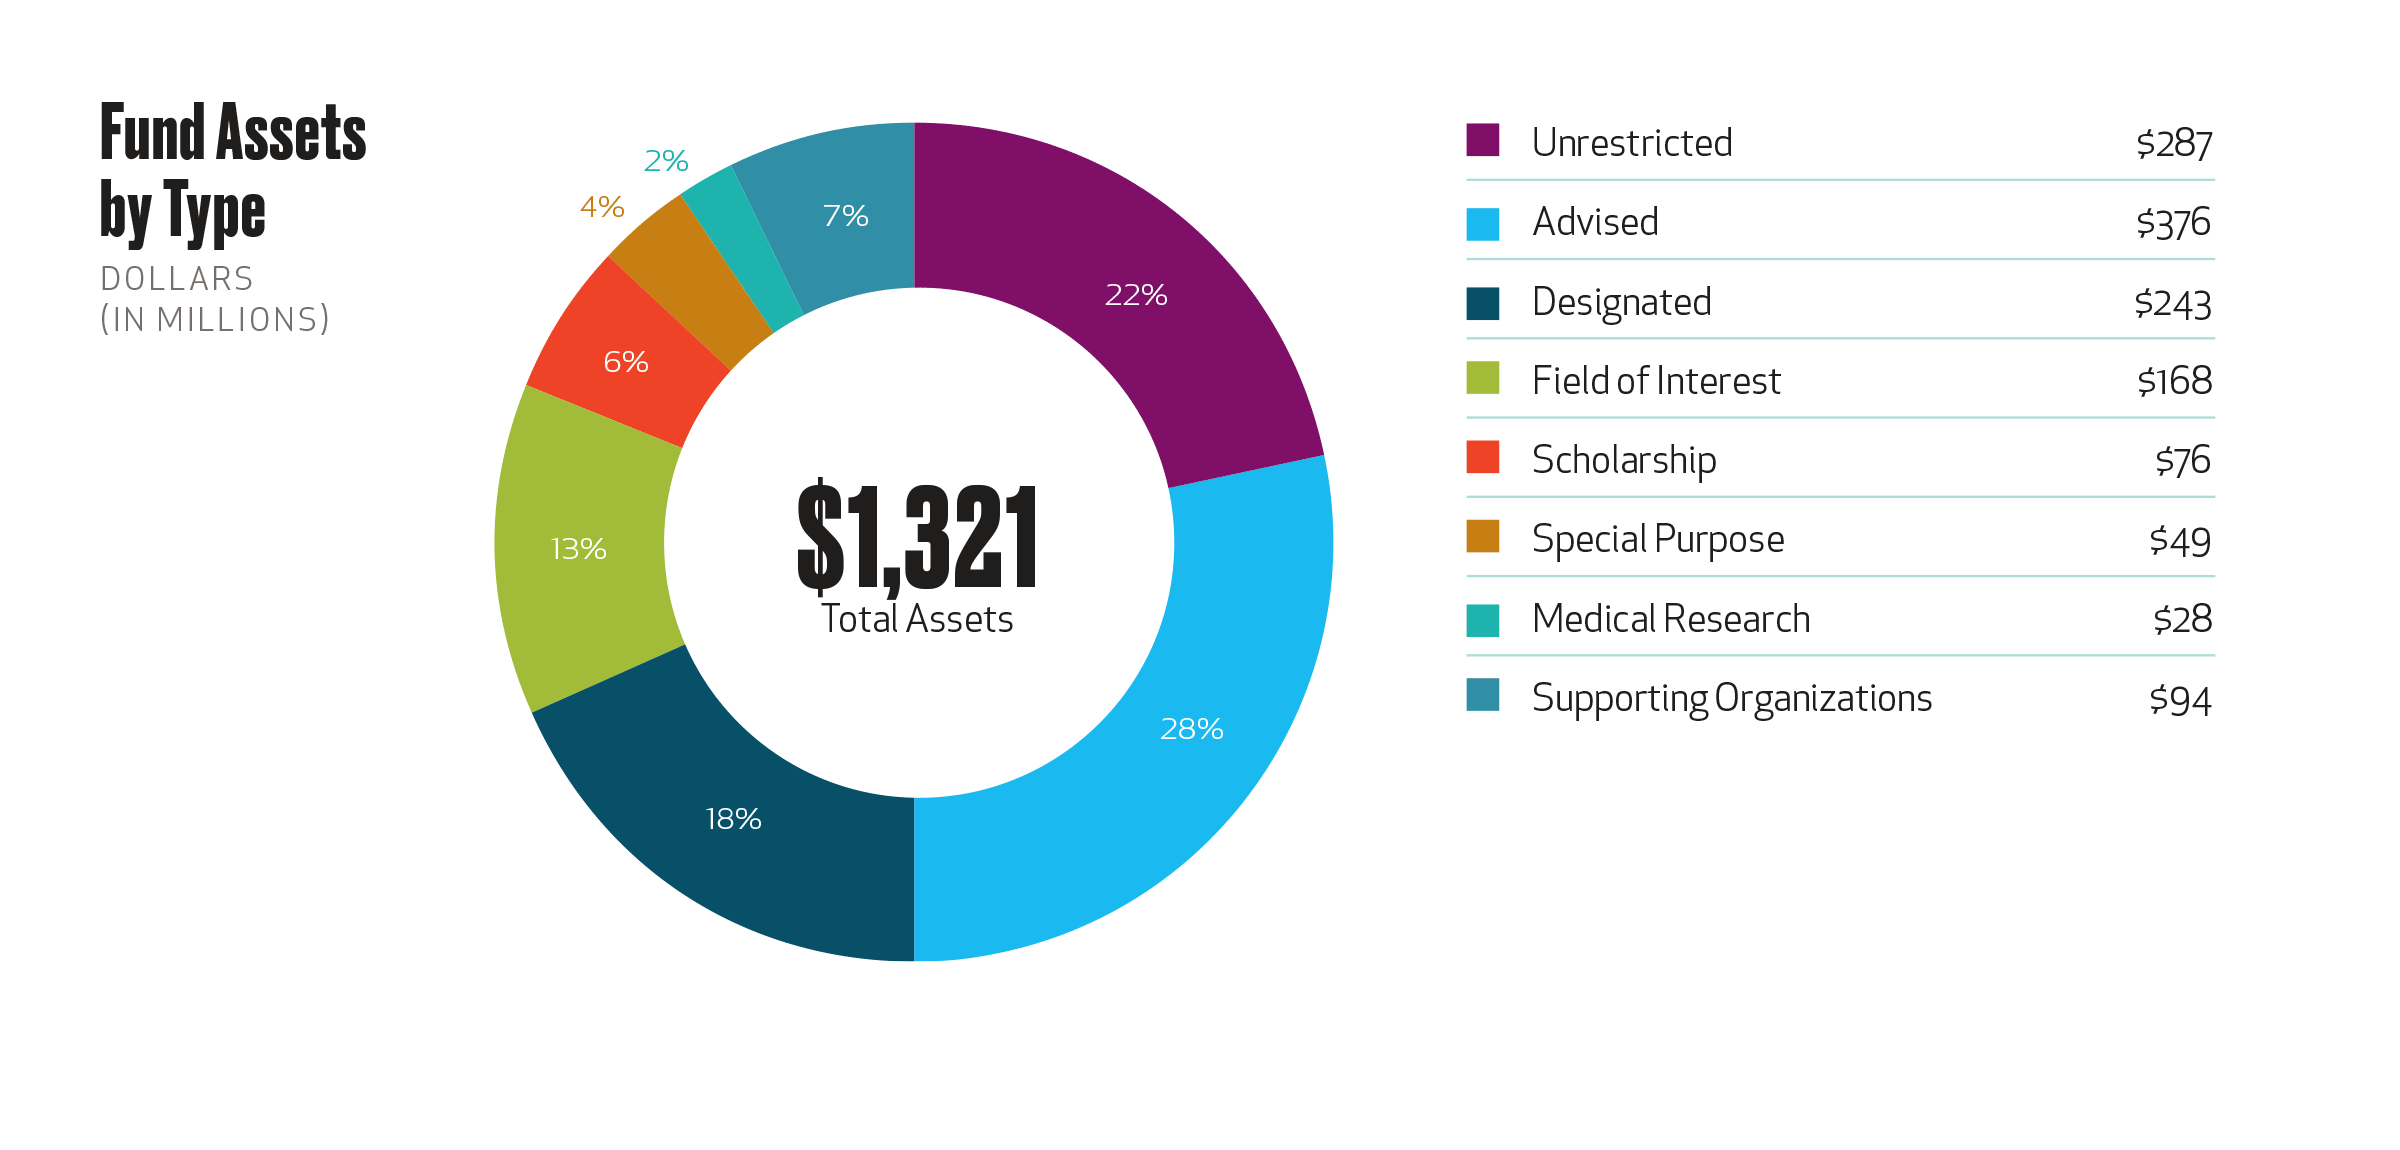 Fund Assets by Type 2019